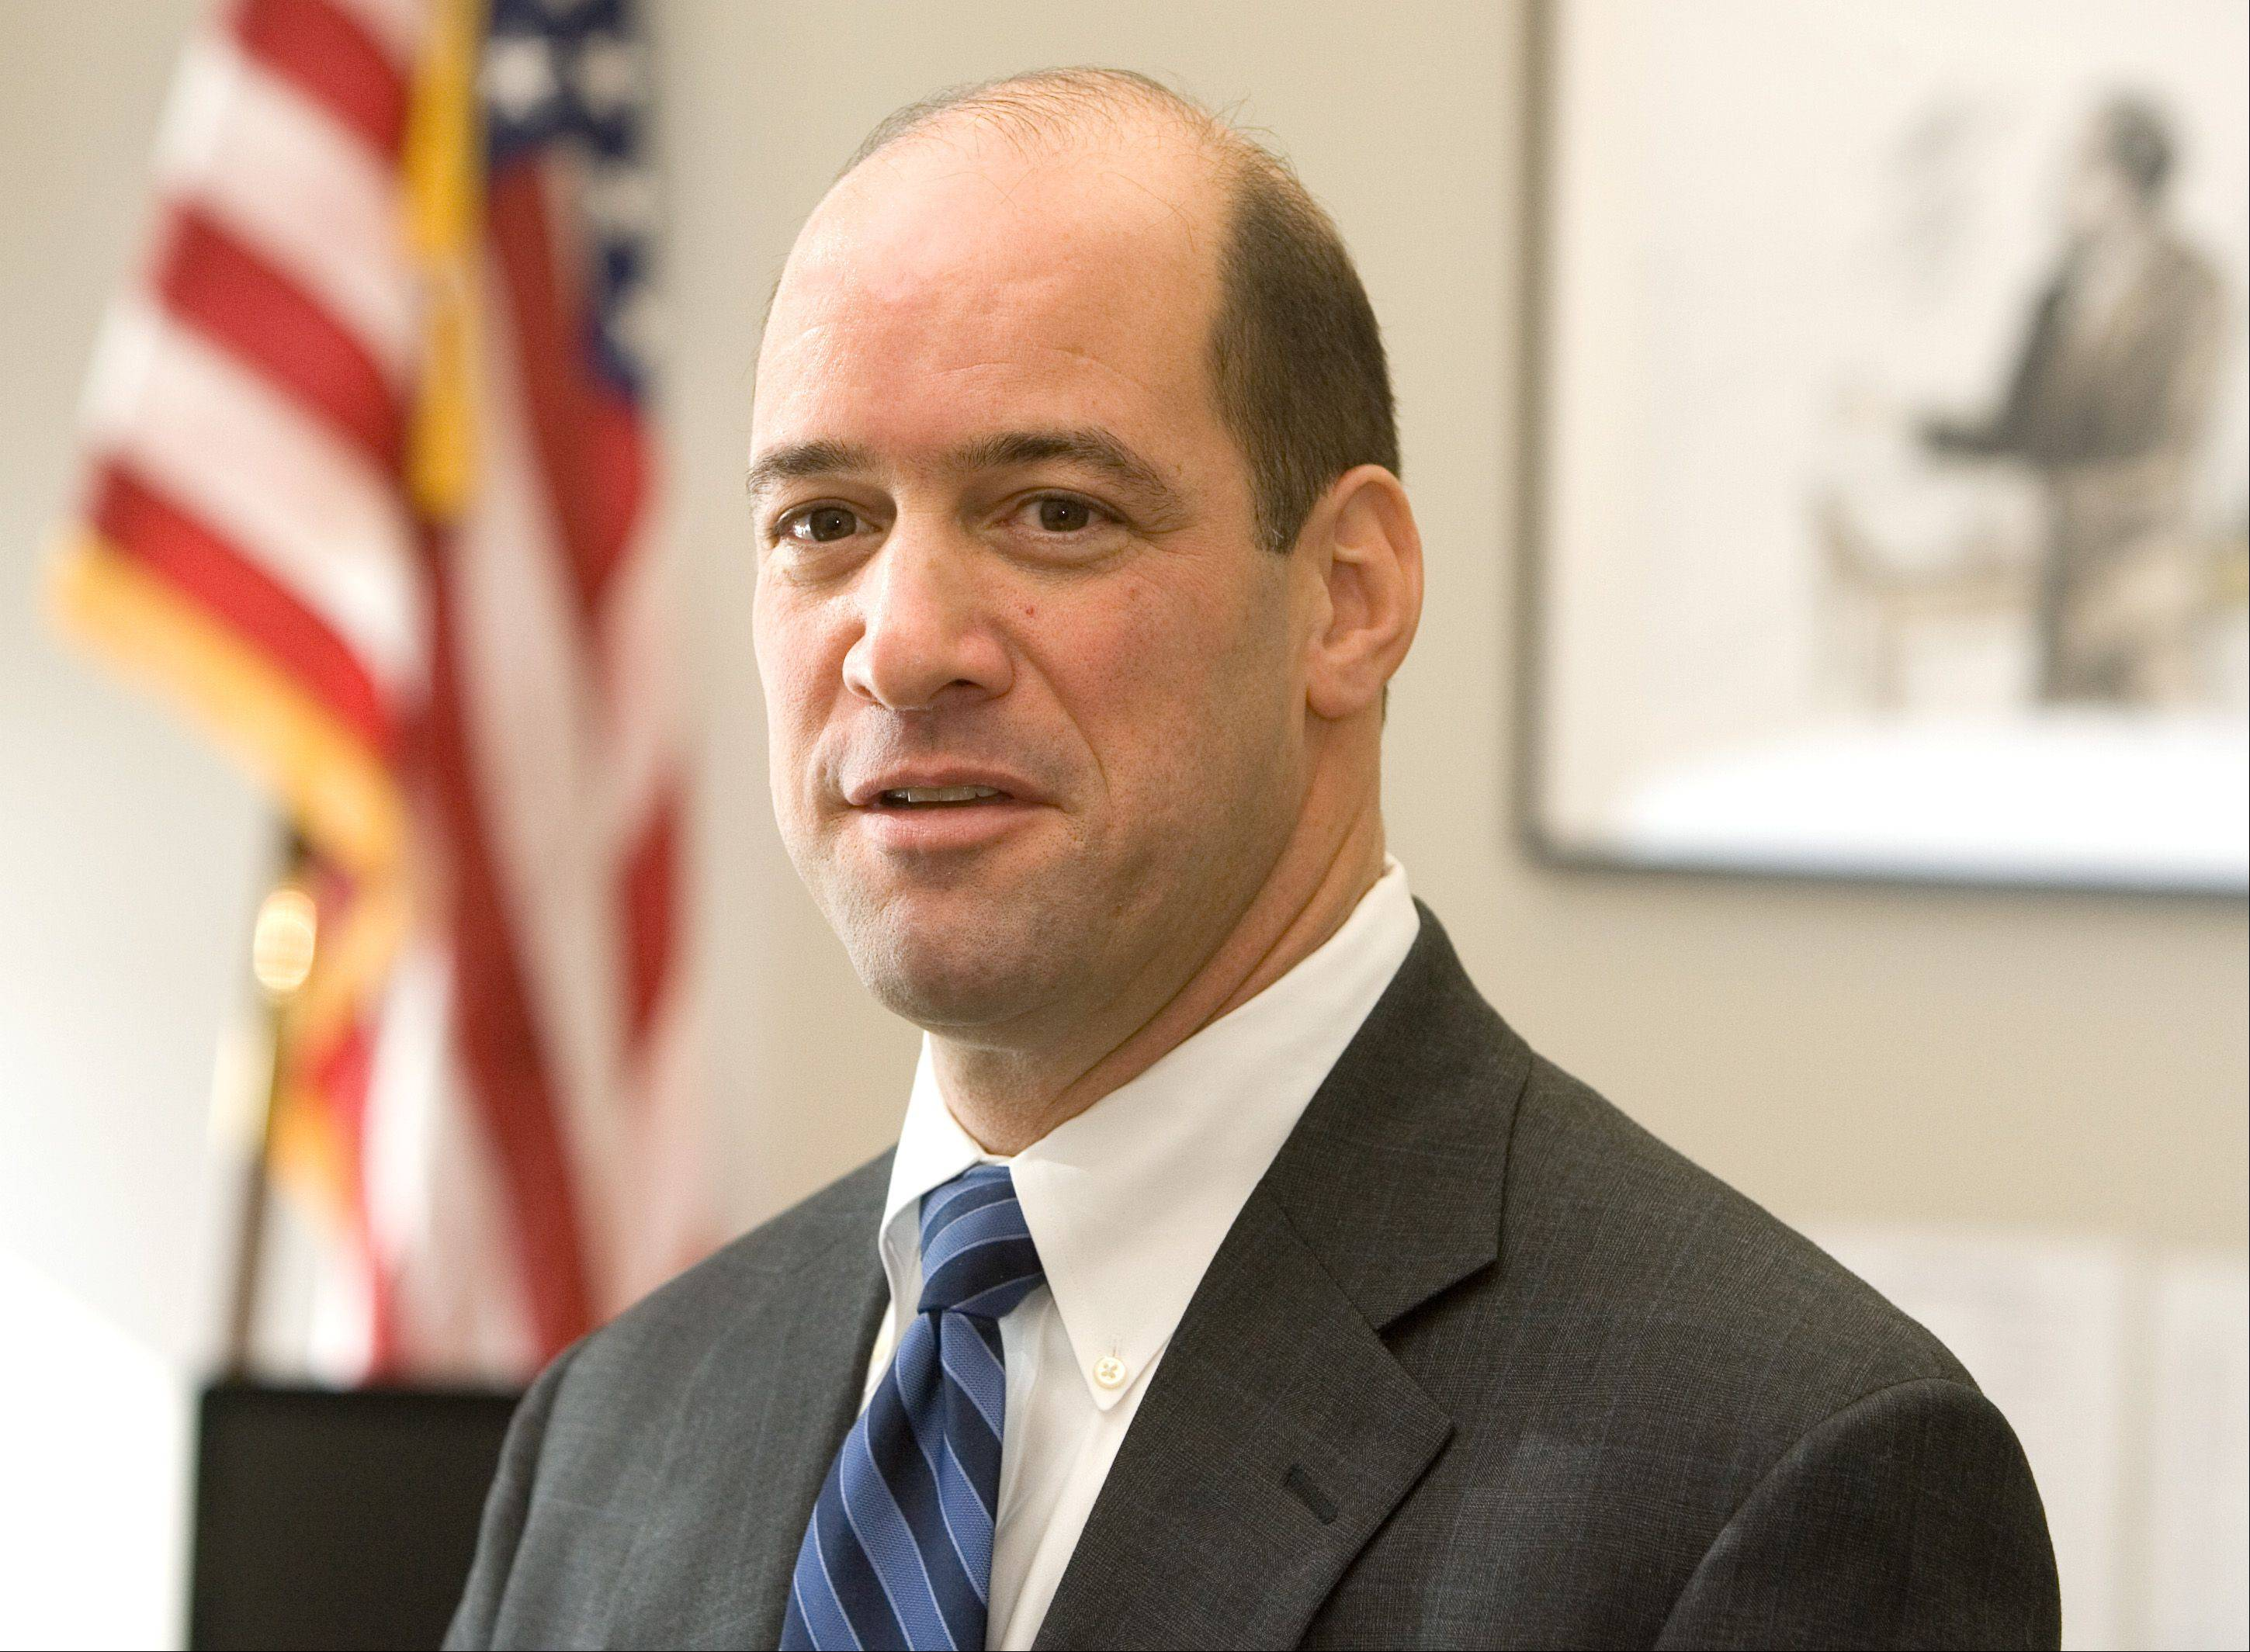 DuPage County State�s Attorney Bob Berlin has enacted a new program making his office one of only two in the state to handle its own appeals.